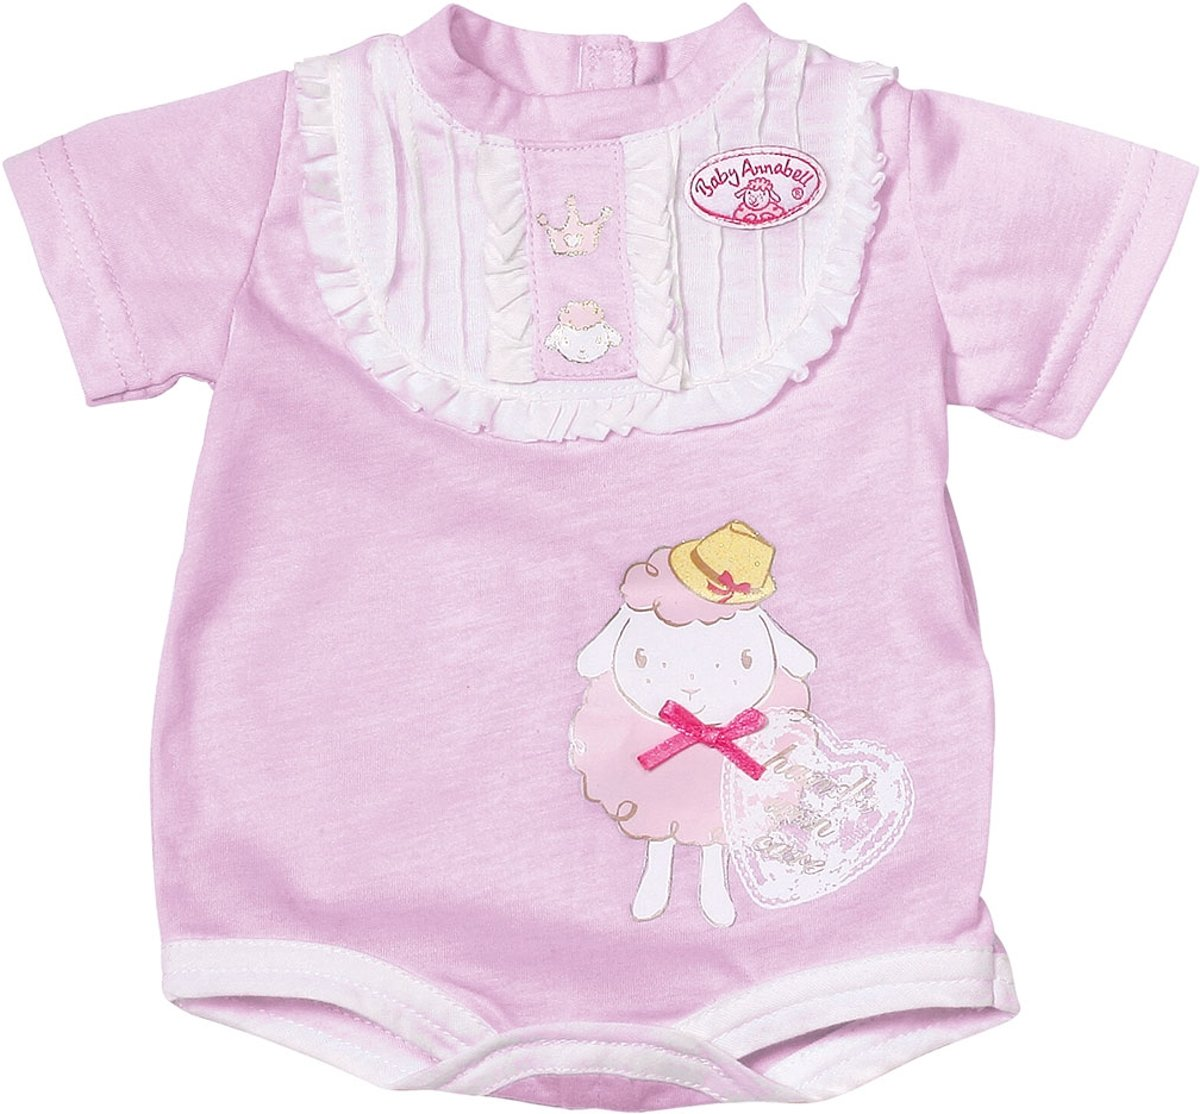 Baby Annabell Ondergoed in roze/wit of lila (assorti, 1 set)